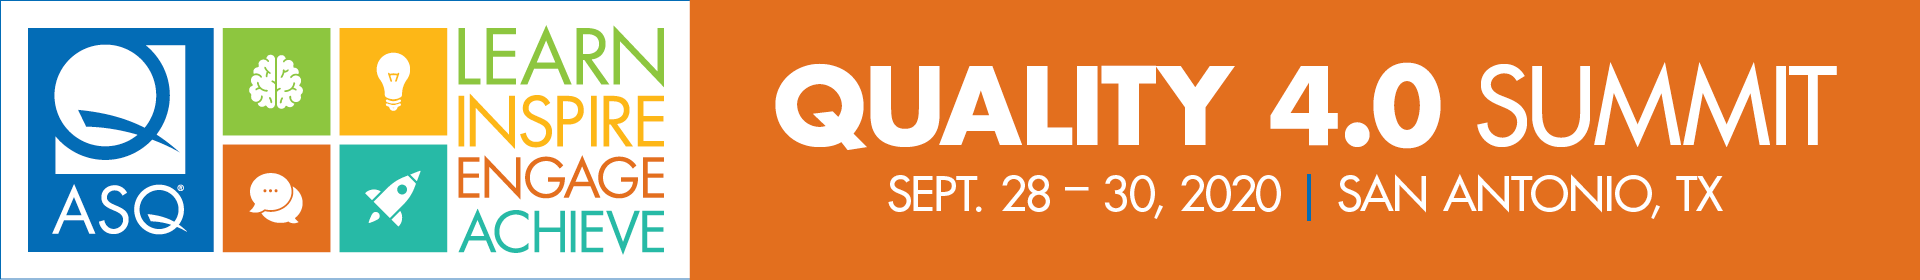 2020 Quality 4.0 Summit Event Banner